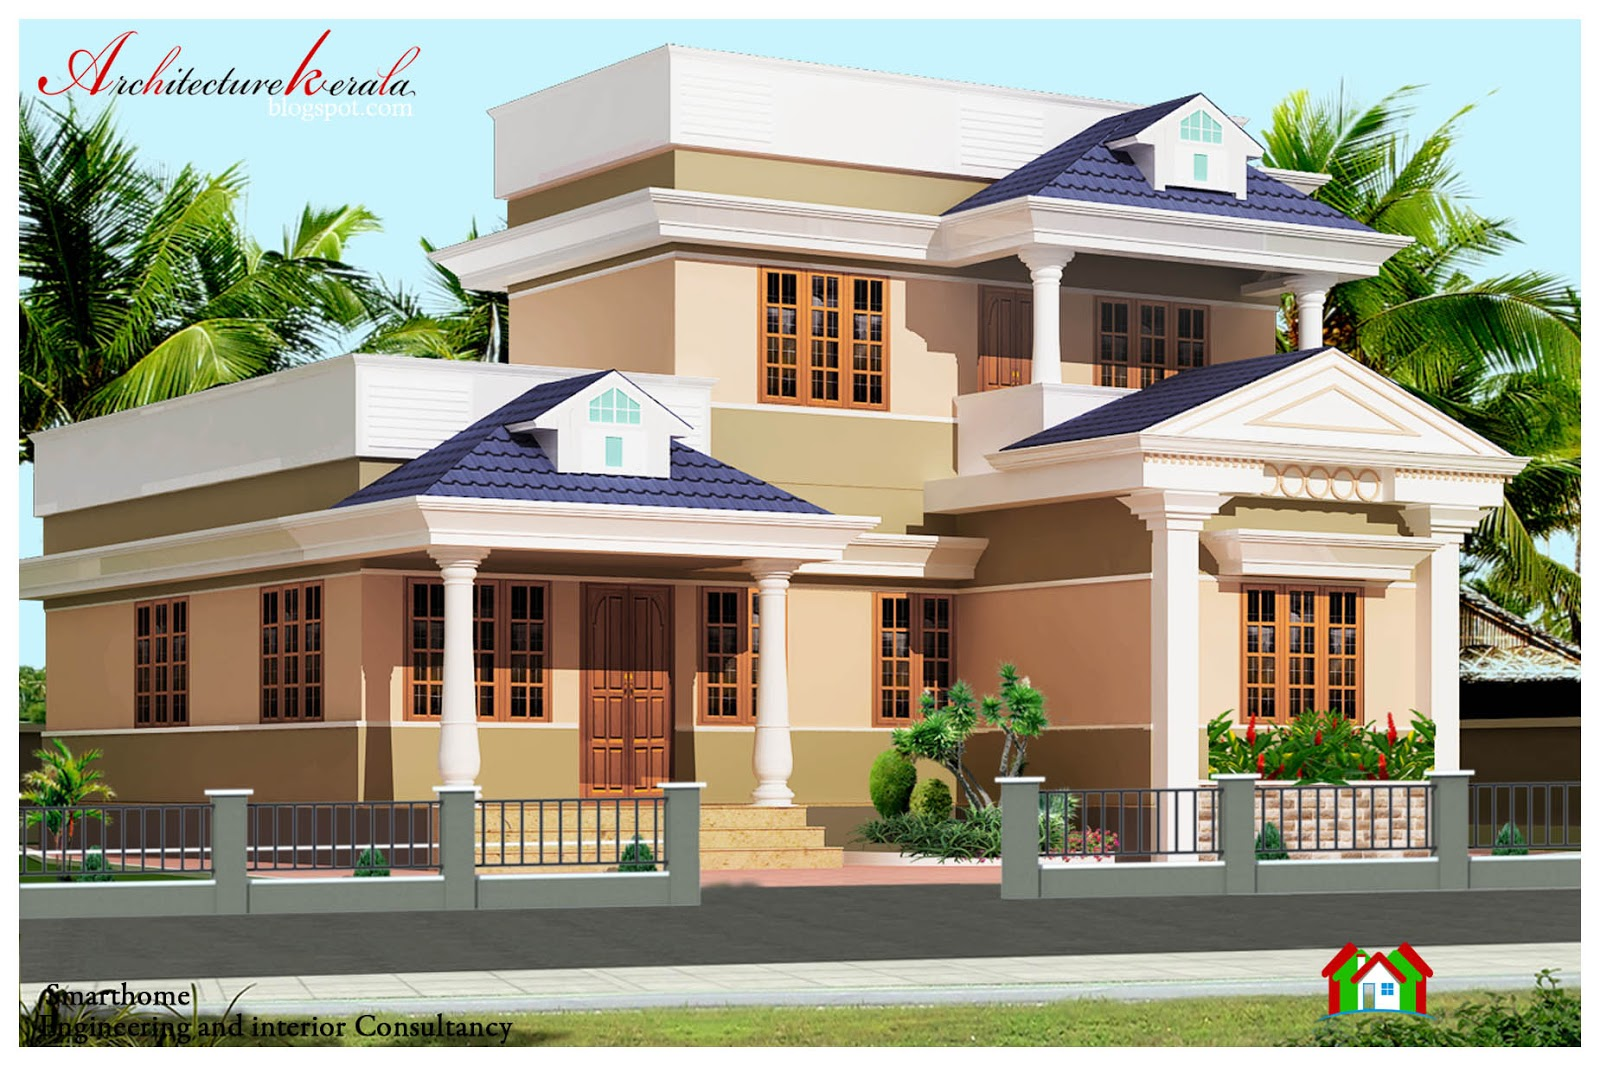 Architecture kerala 1000 sq ft kerala style house plan for Building styles for homes